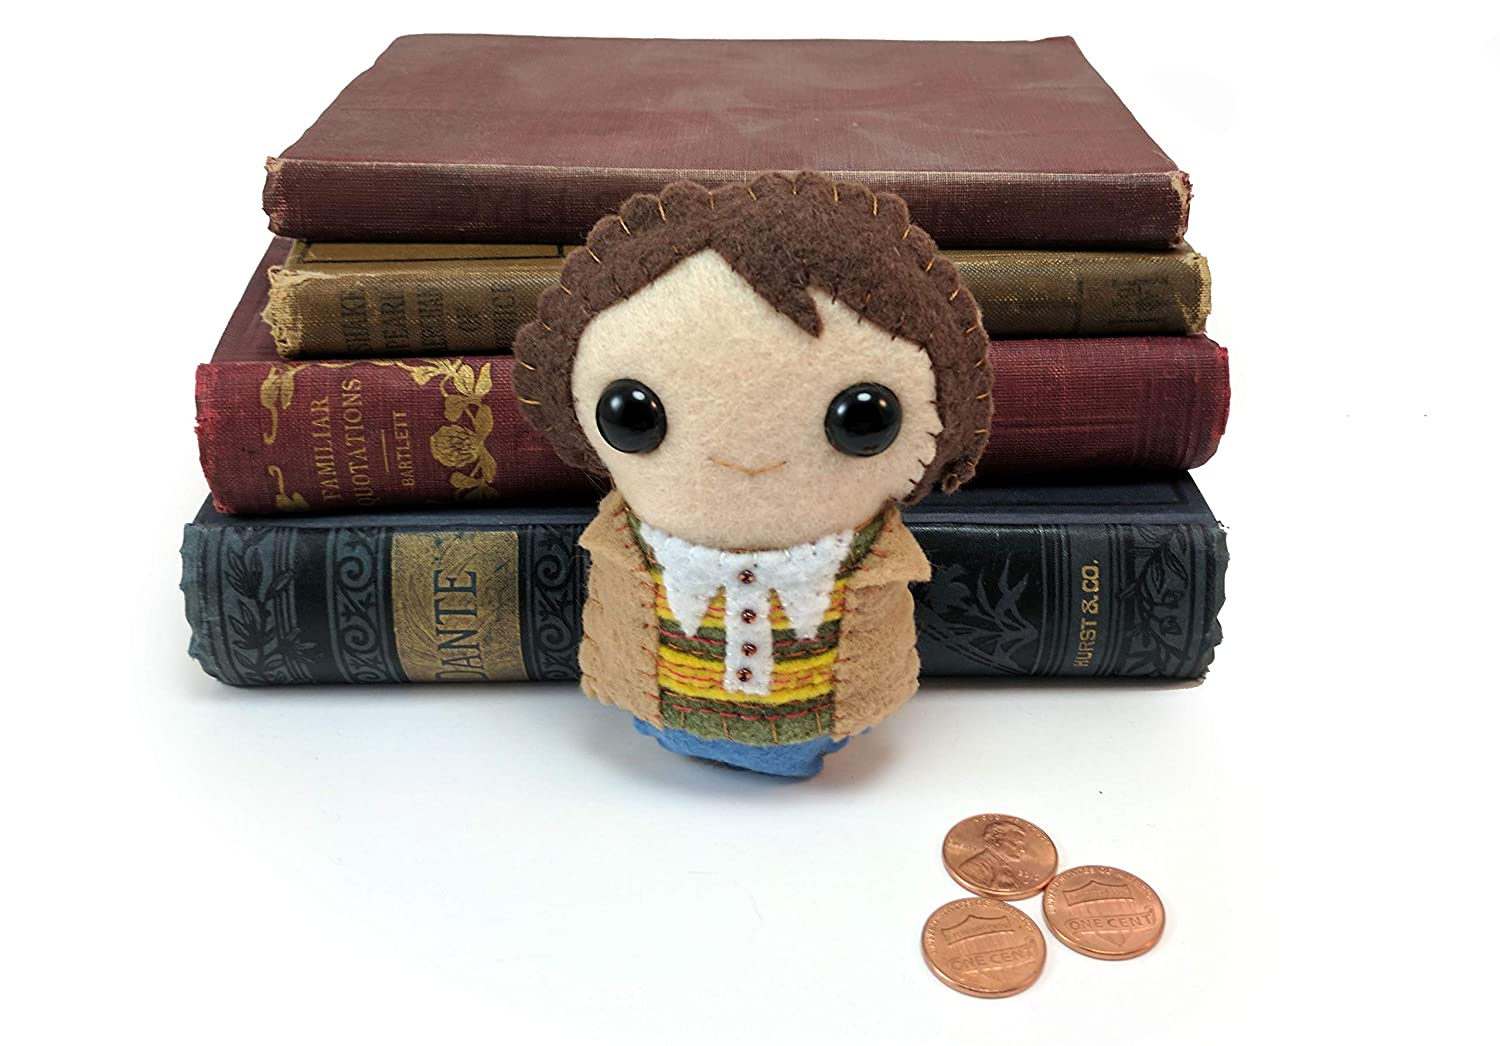 made to order Stranger Things plushies set